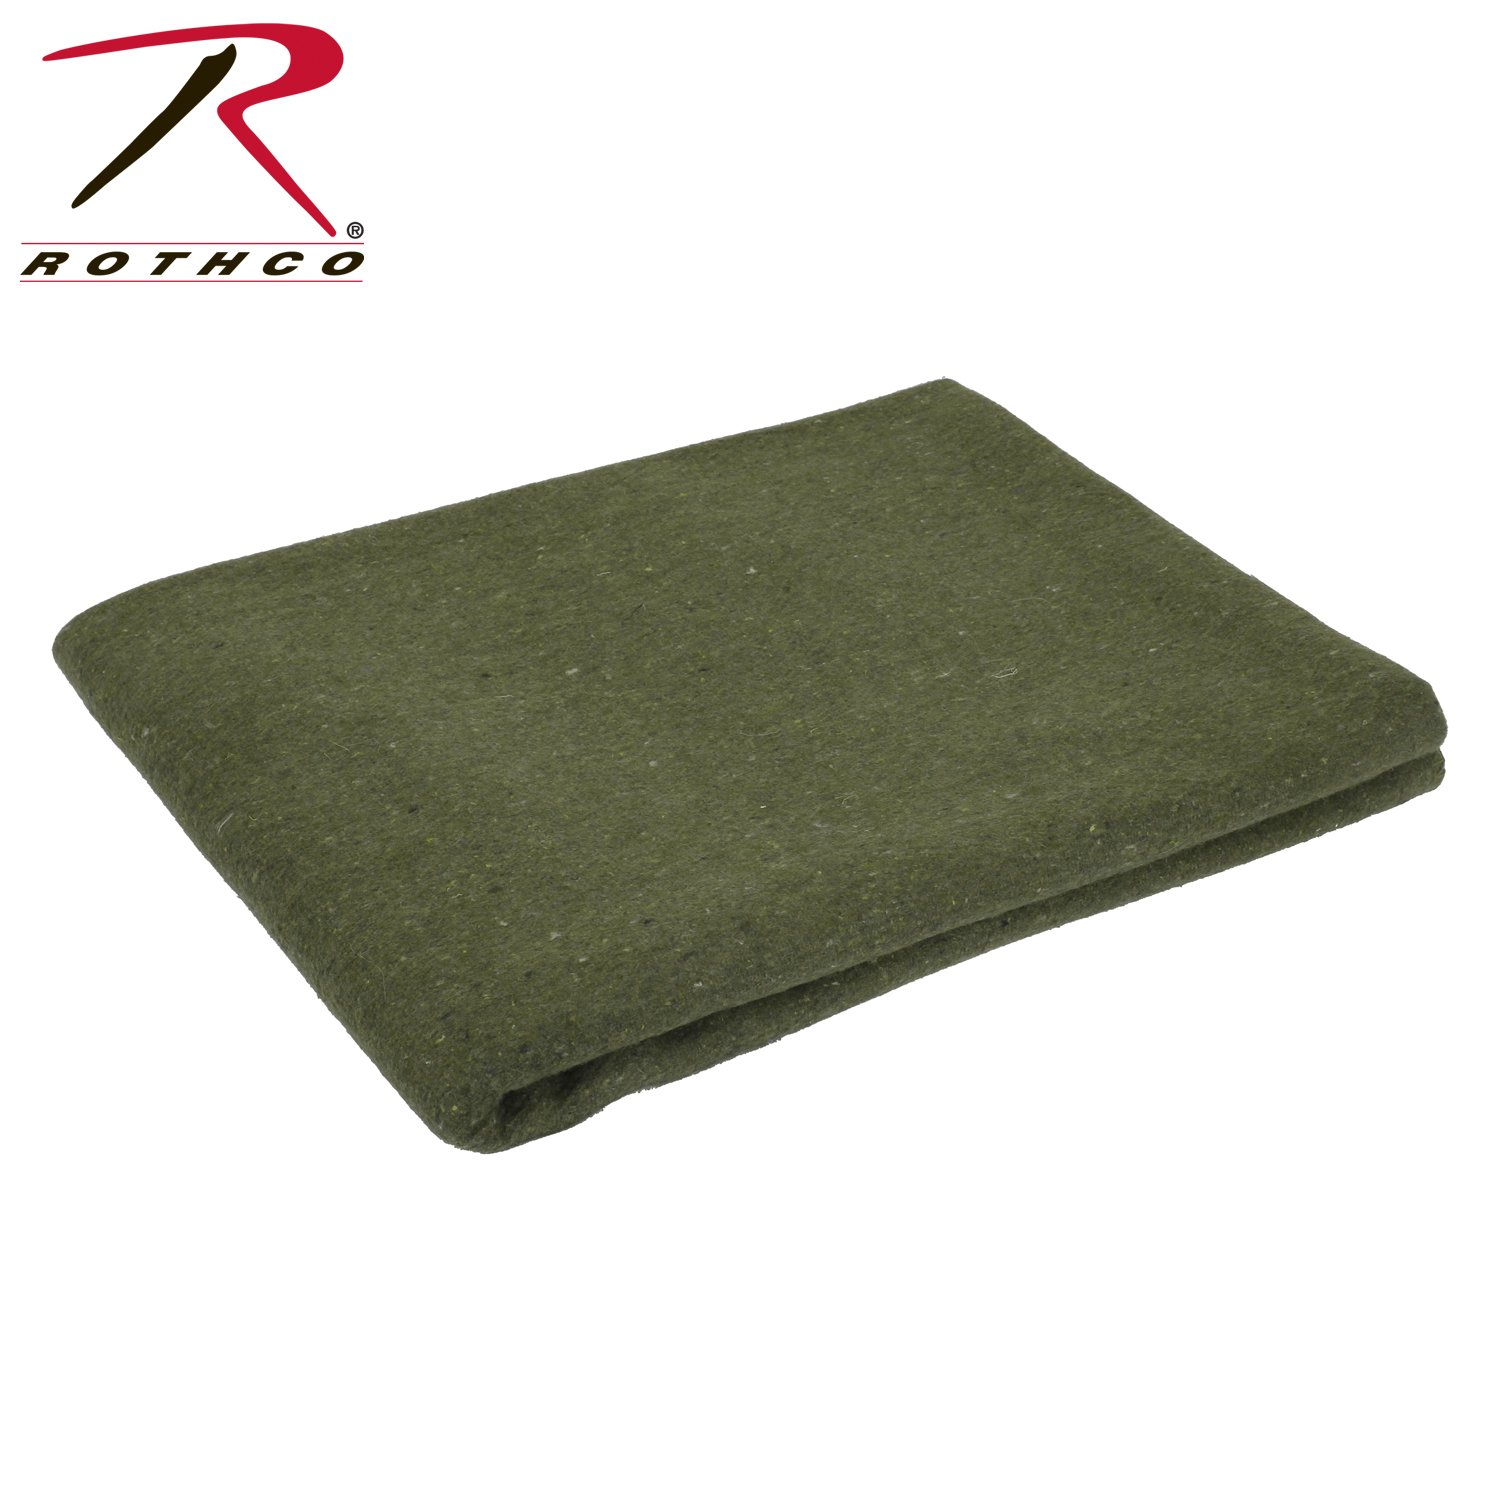 Rothco Wool Rescue Blanket, Olive Drab